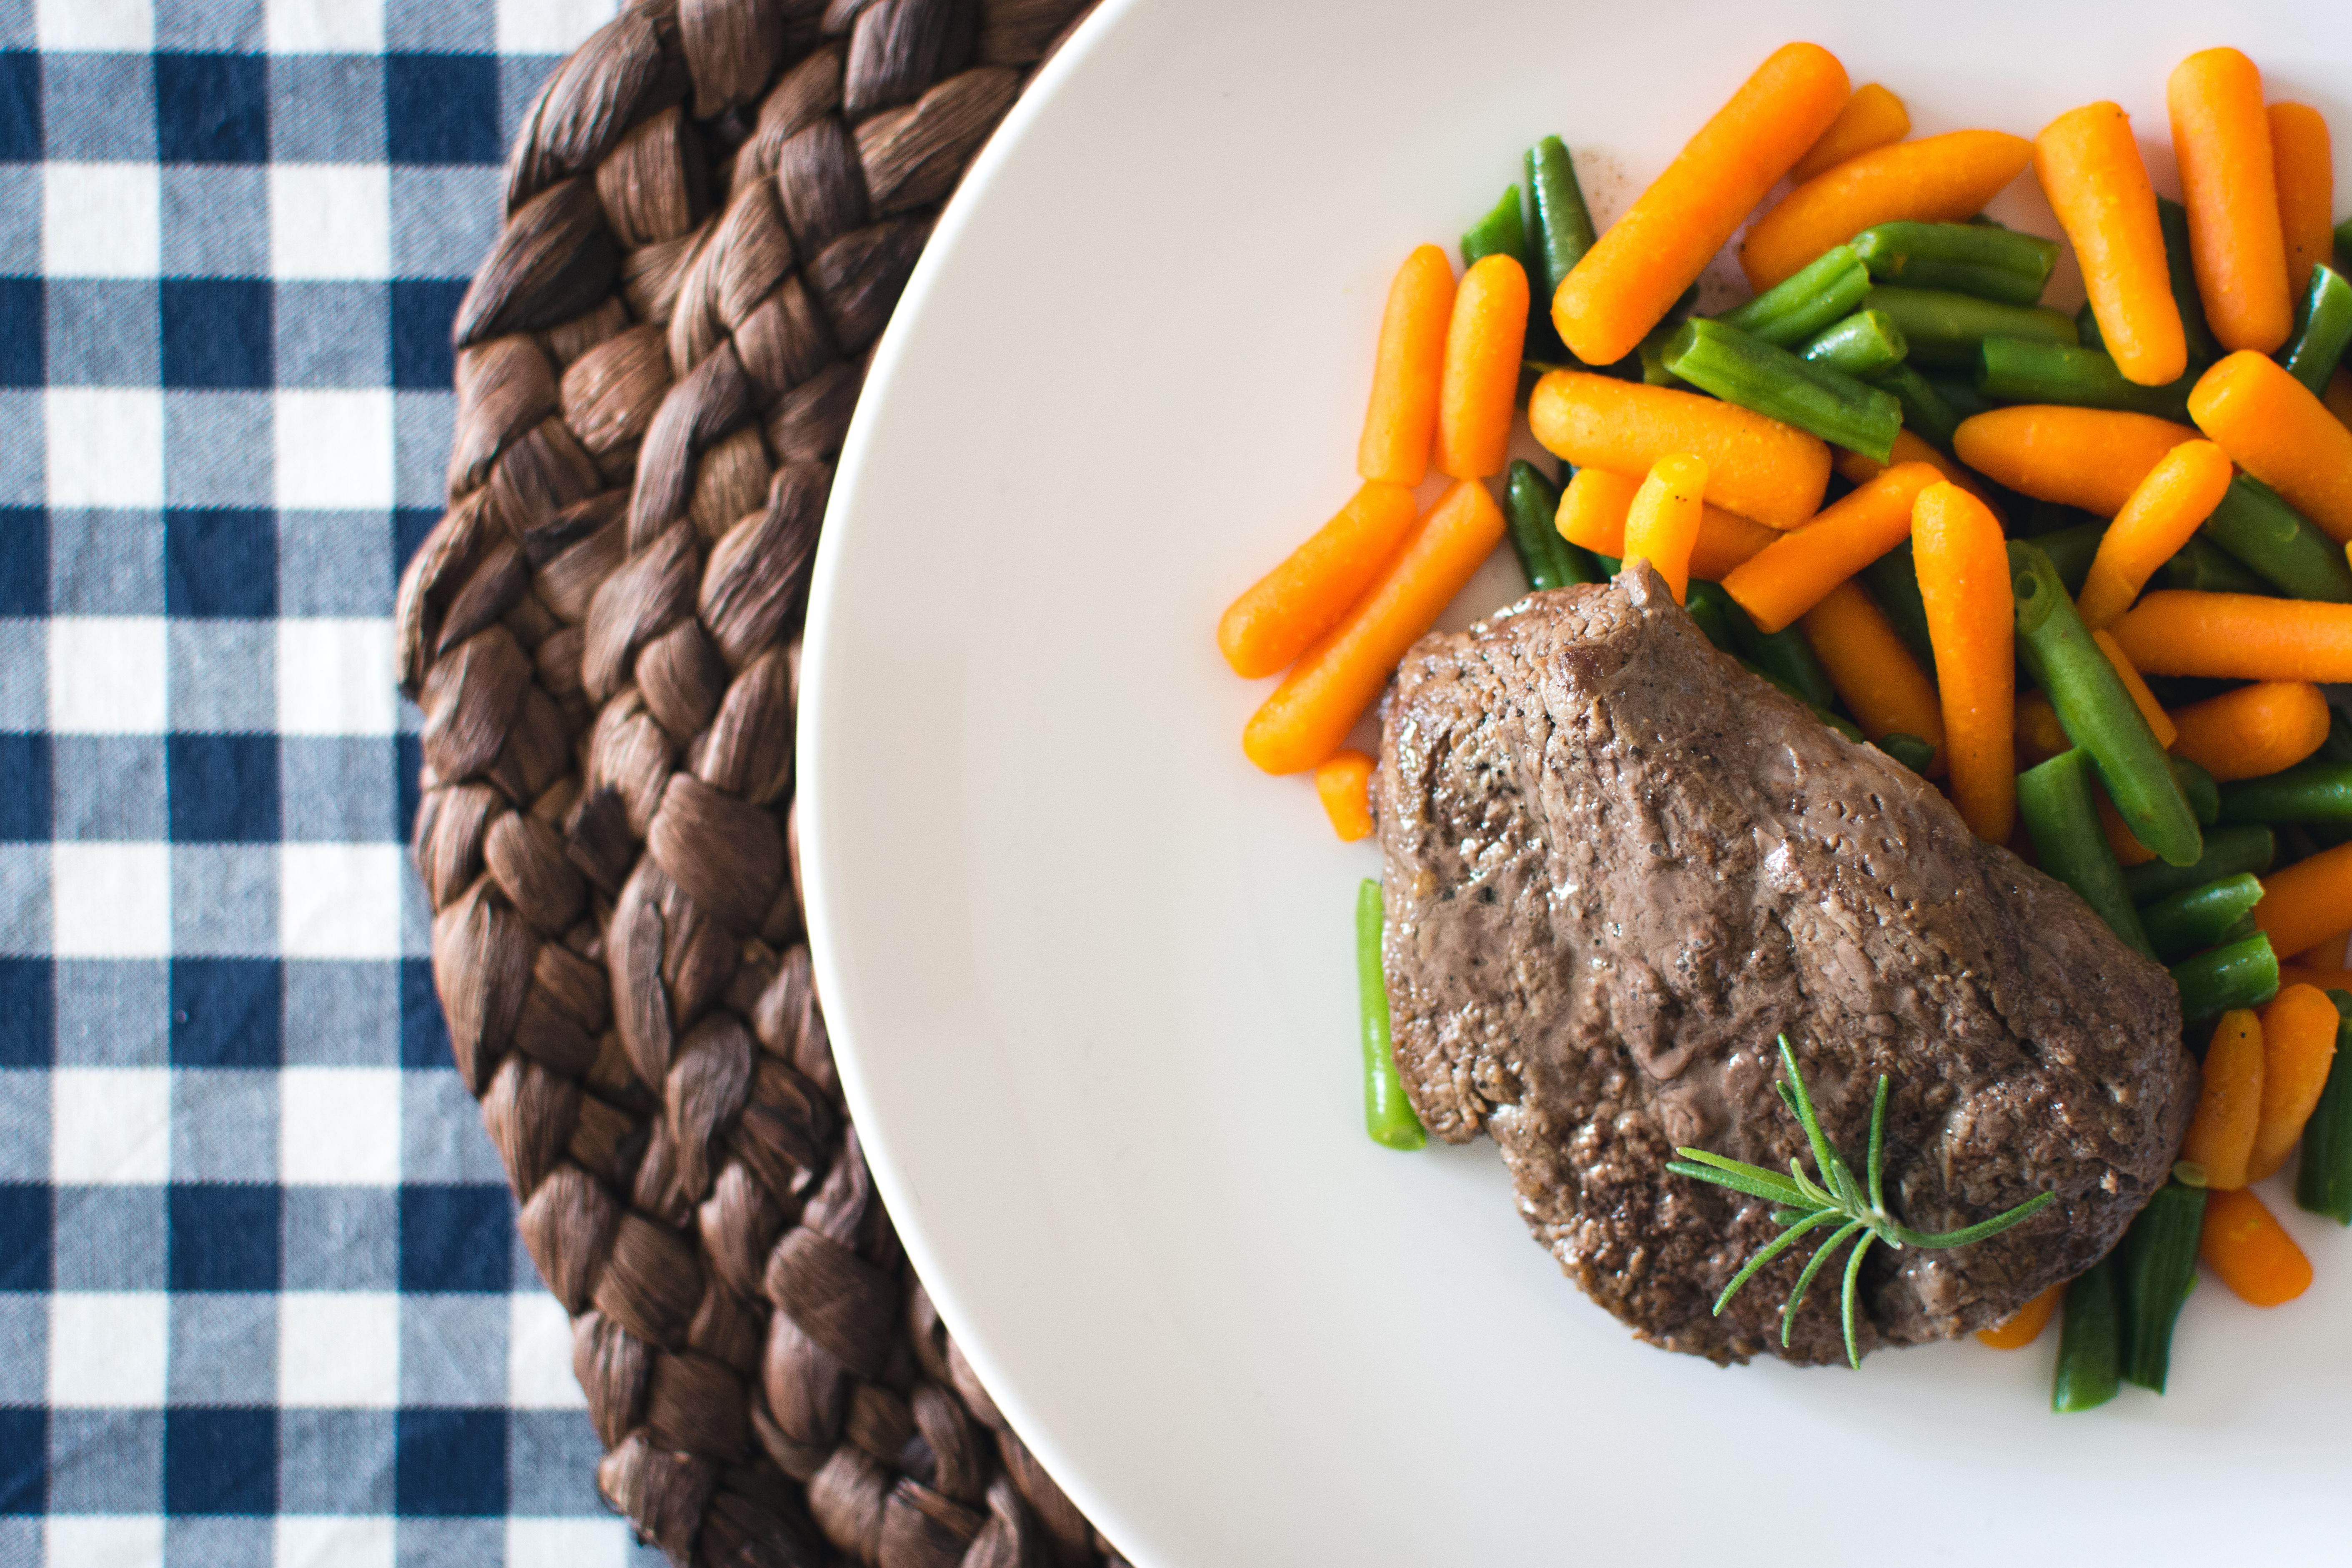 Beef steak with mini carrots and green beans